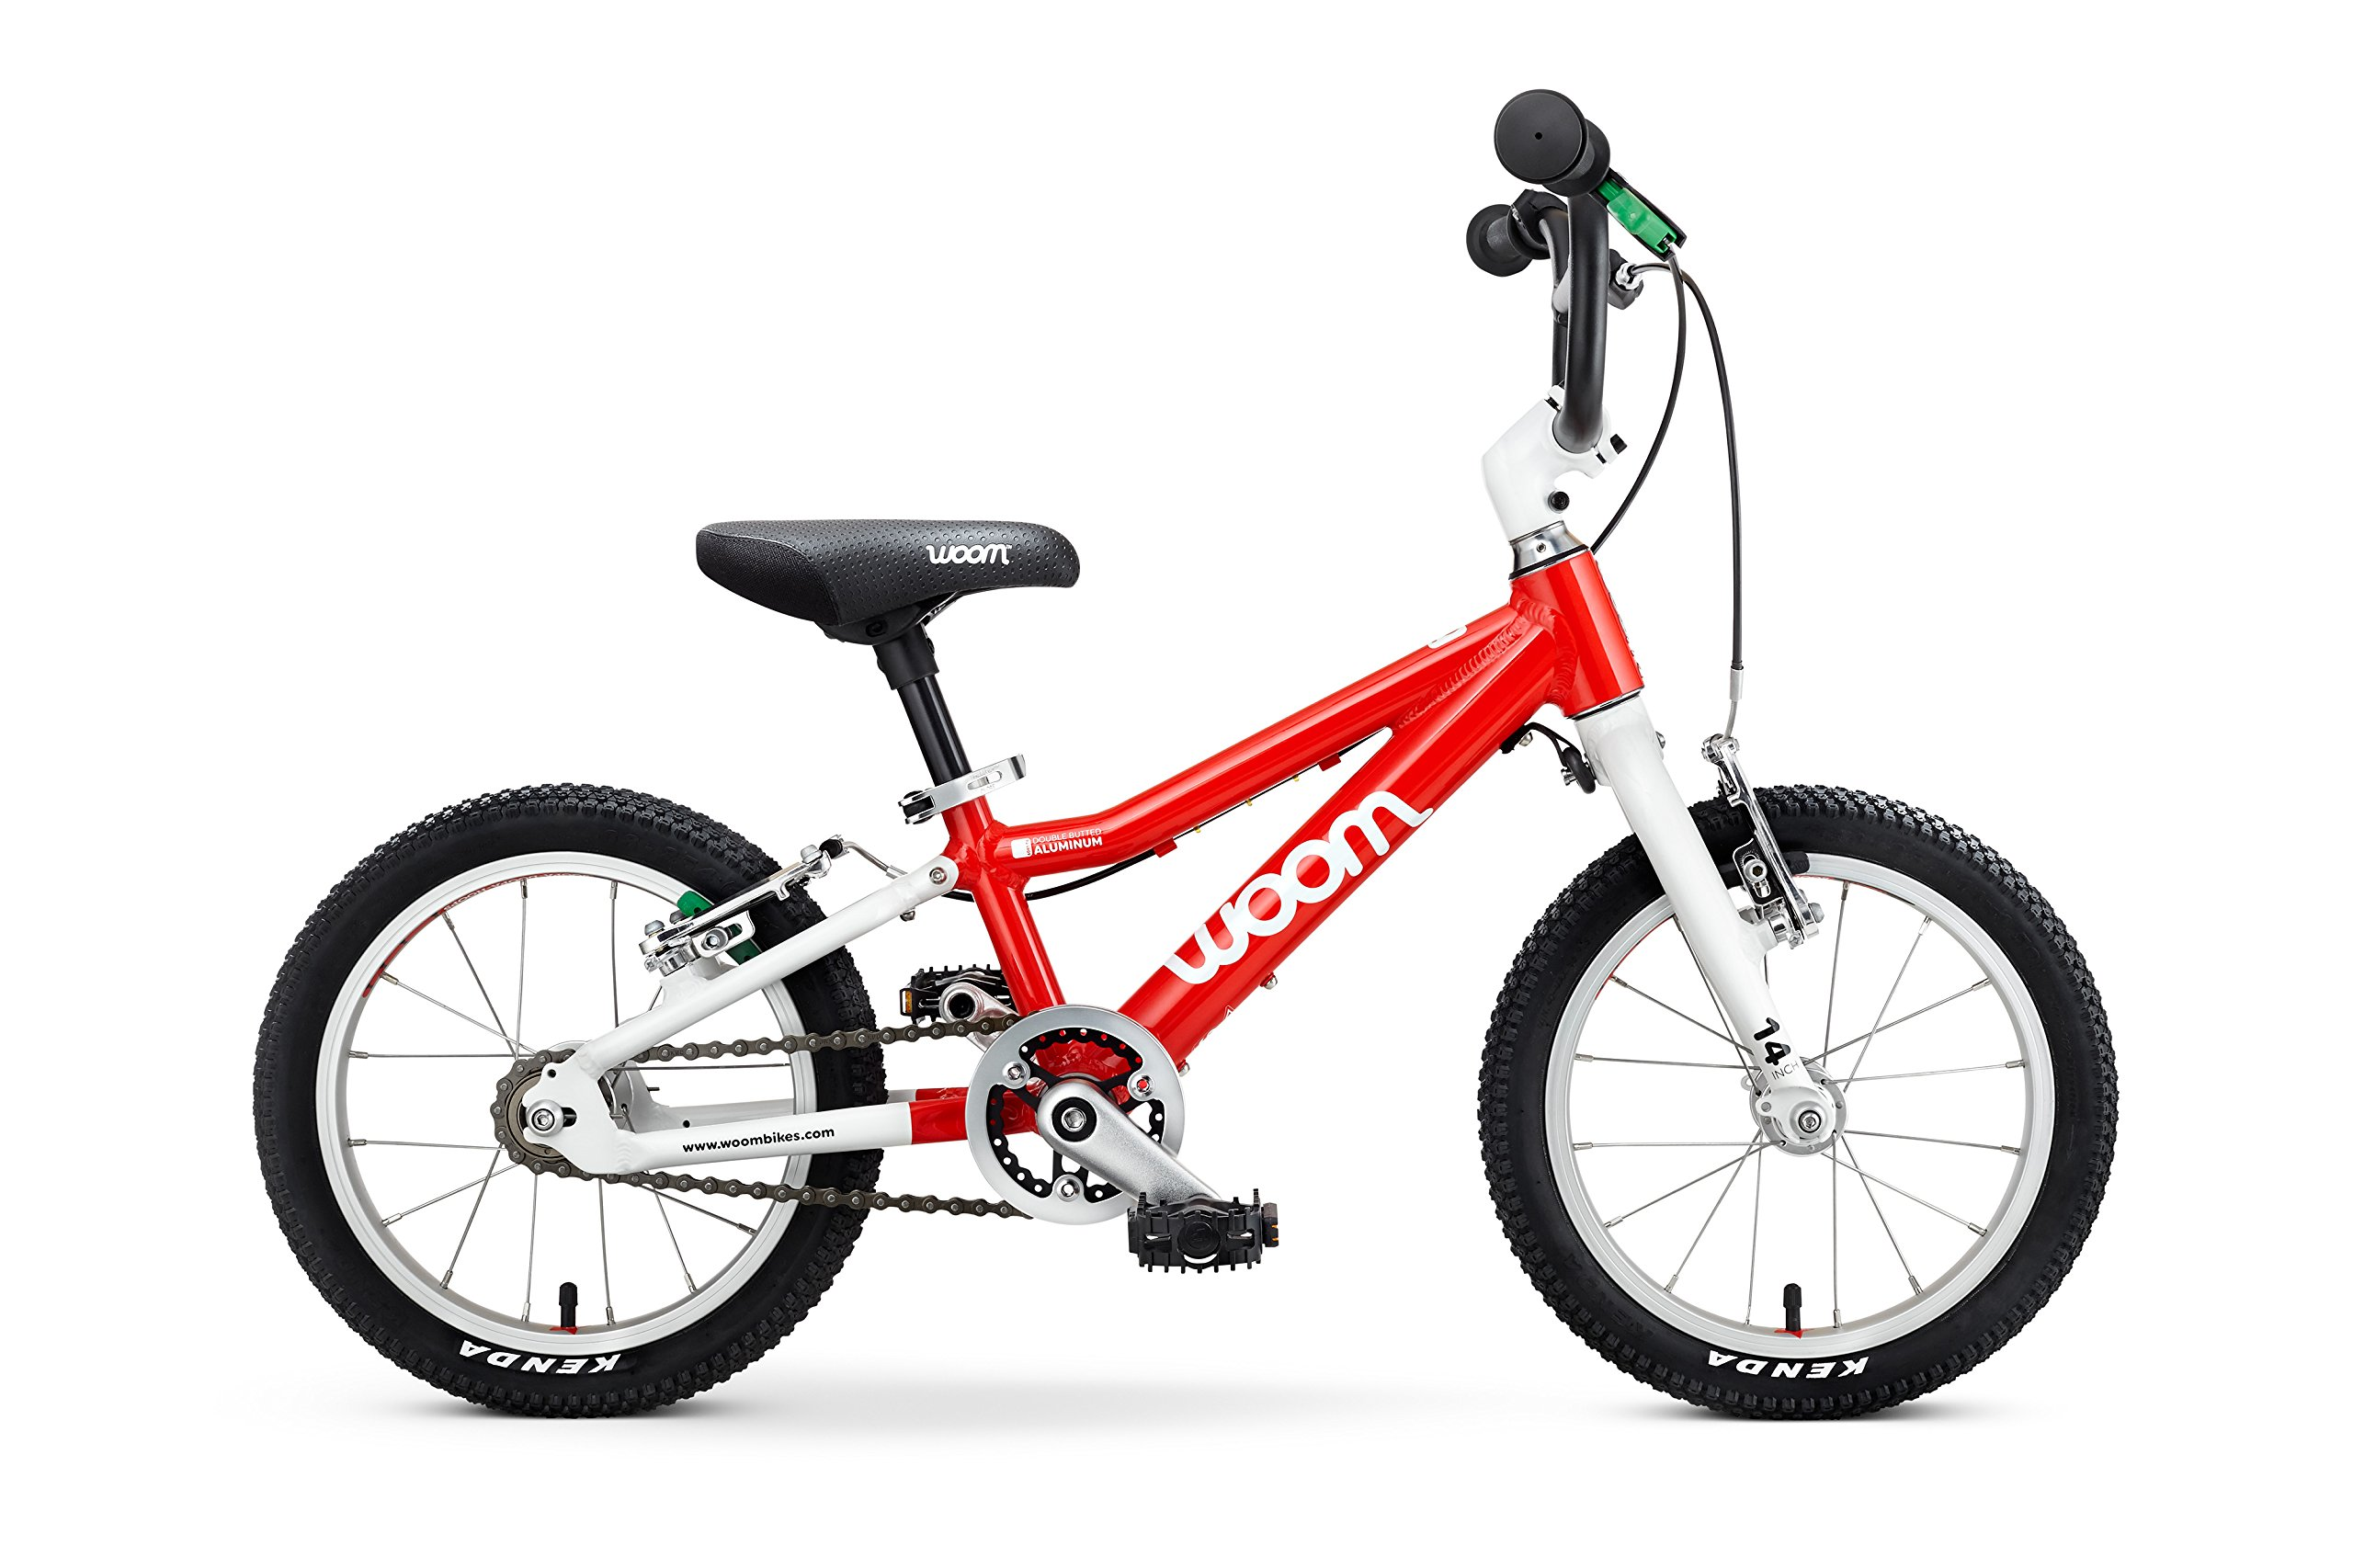 "Woom 2 Pedal Bike 14"", Ages 3 to 4.5 Years, Red by WOOM BIKES USA"